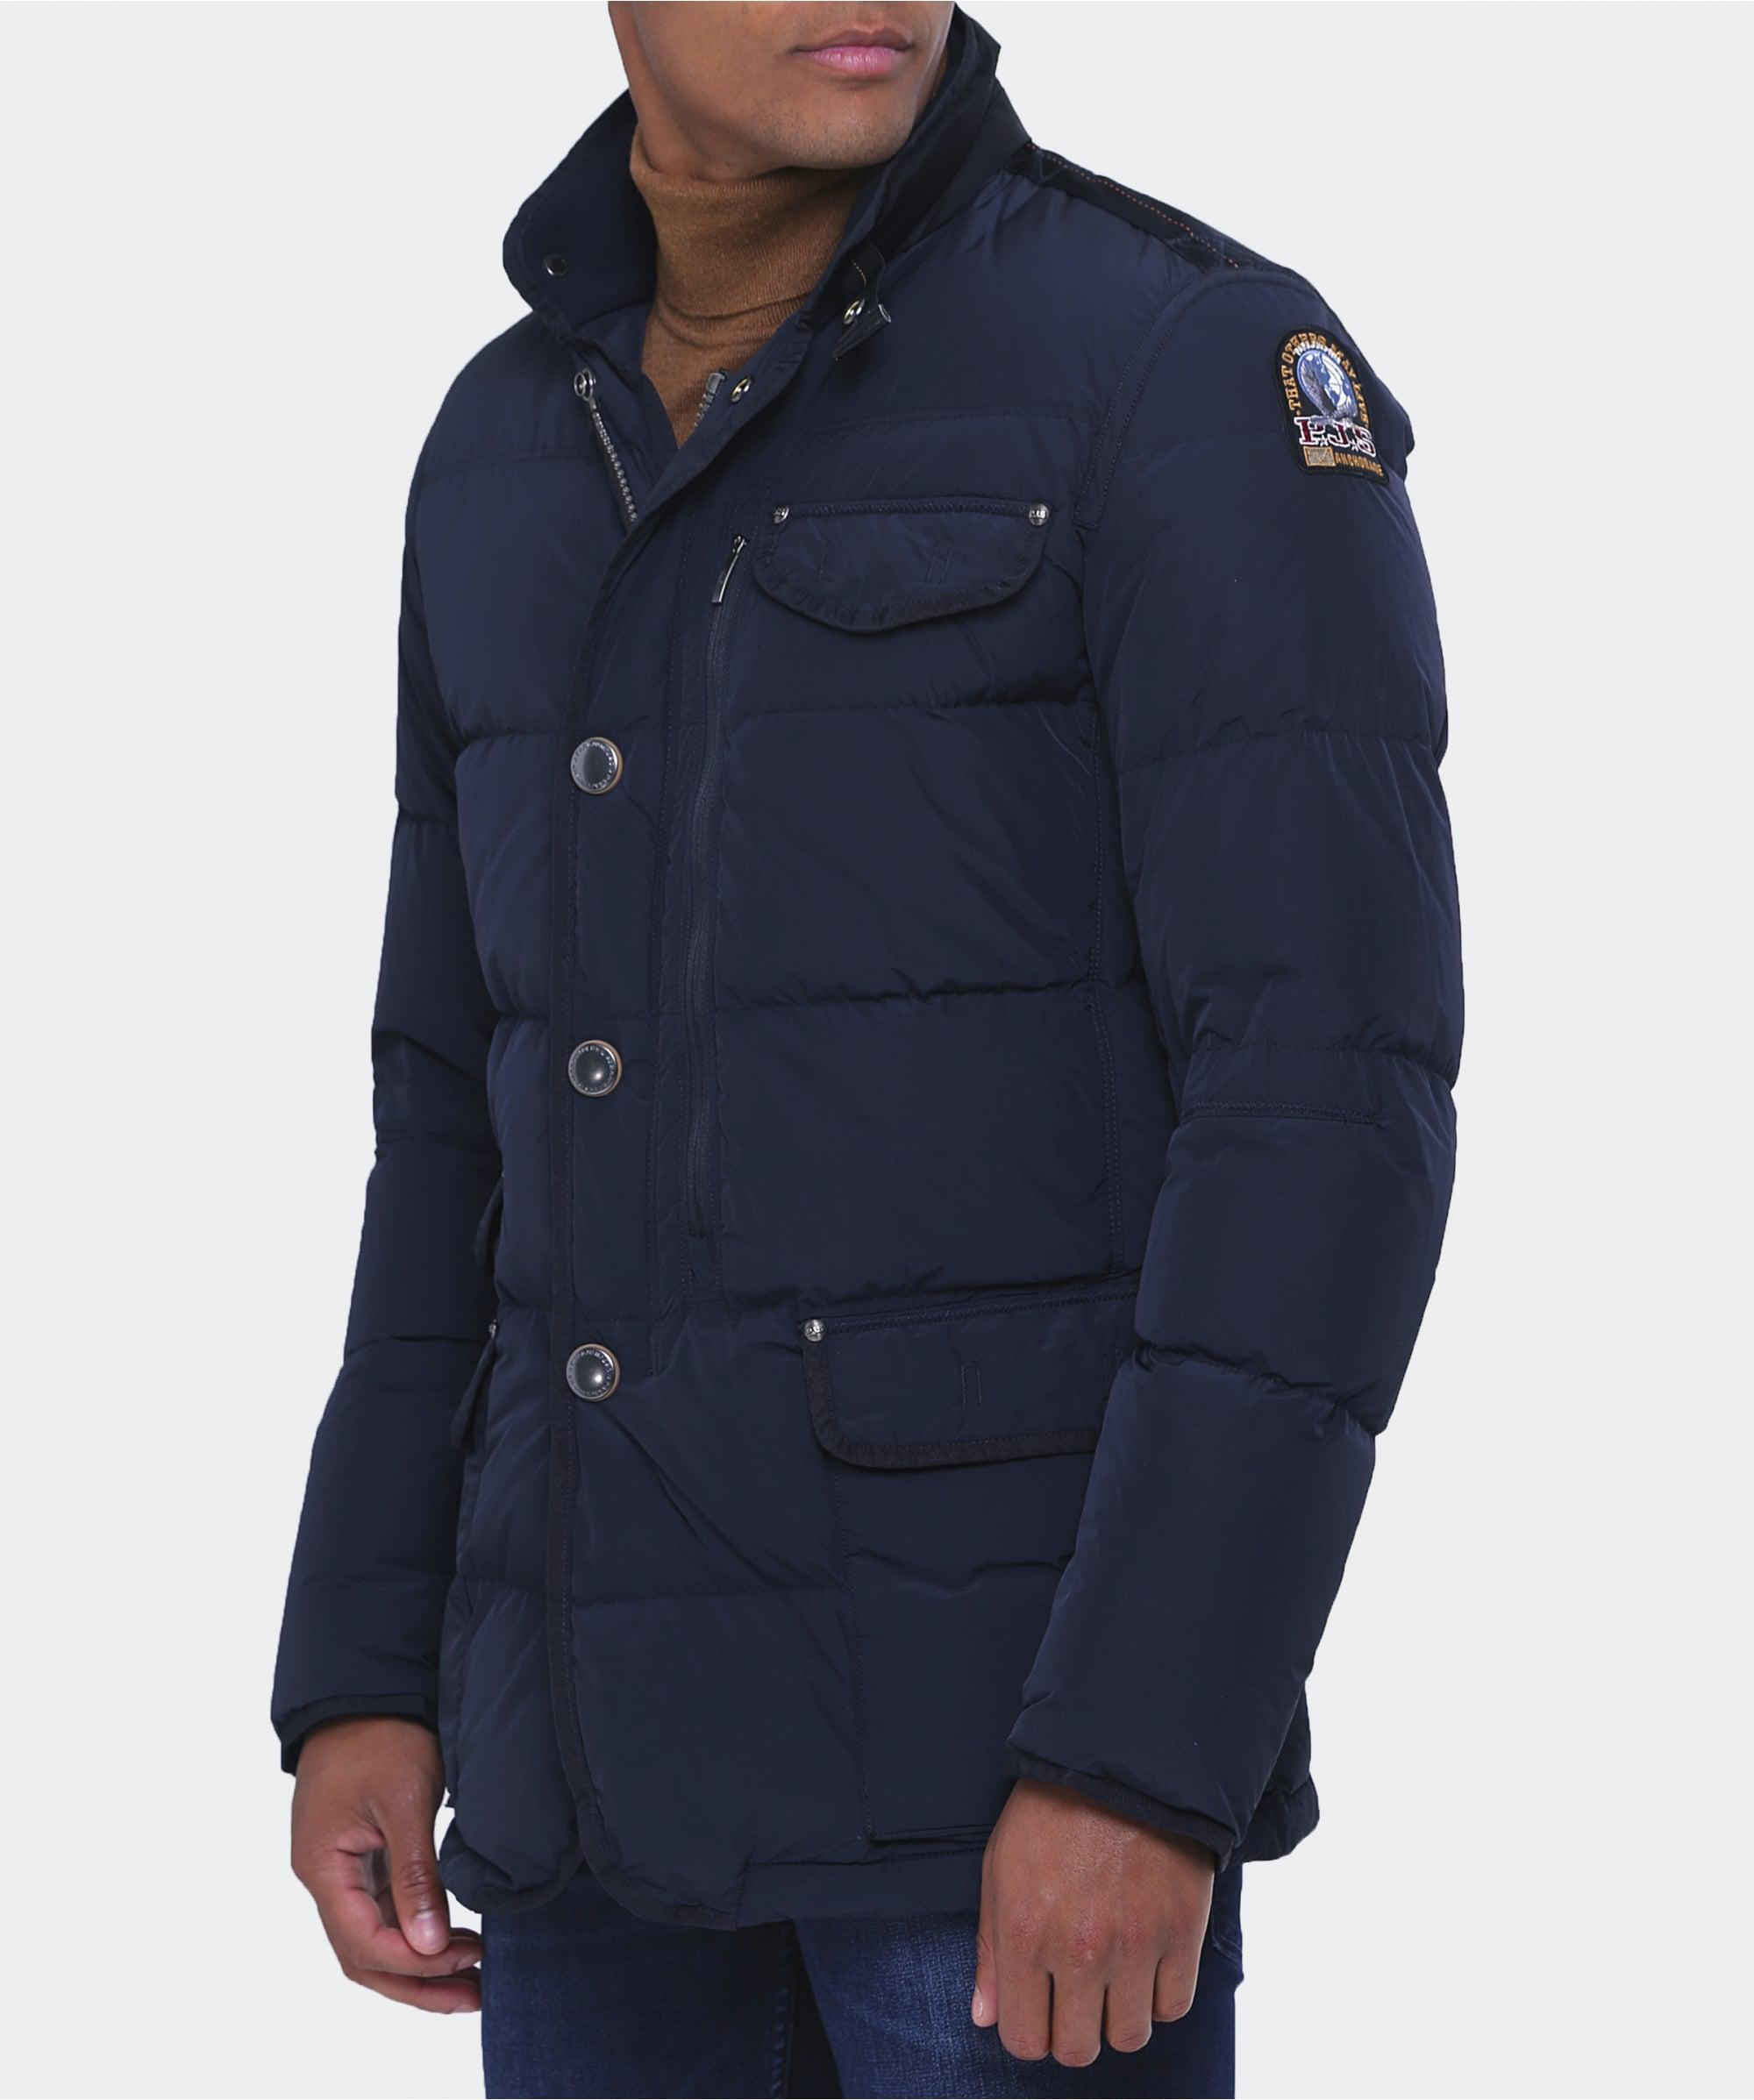 parajumpers blazer down jacket